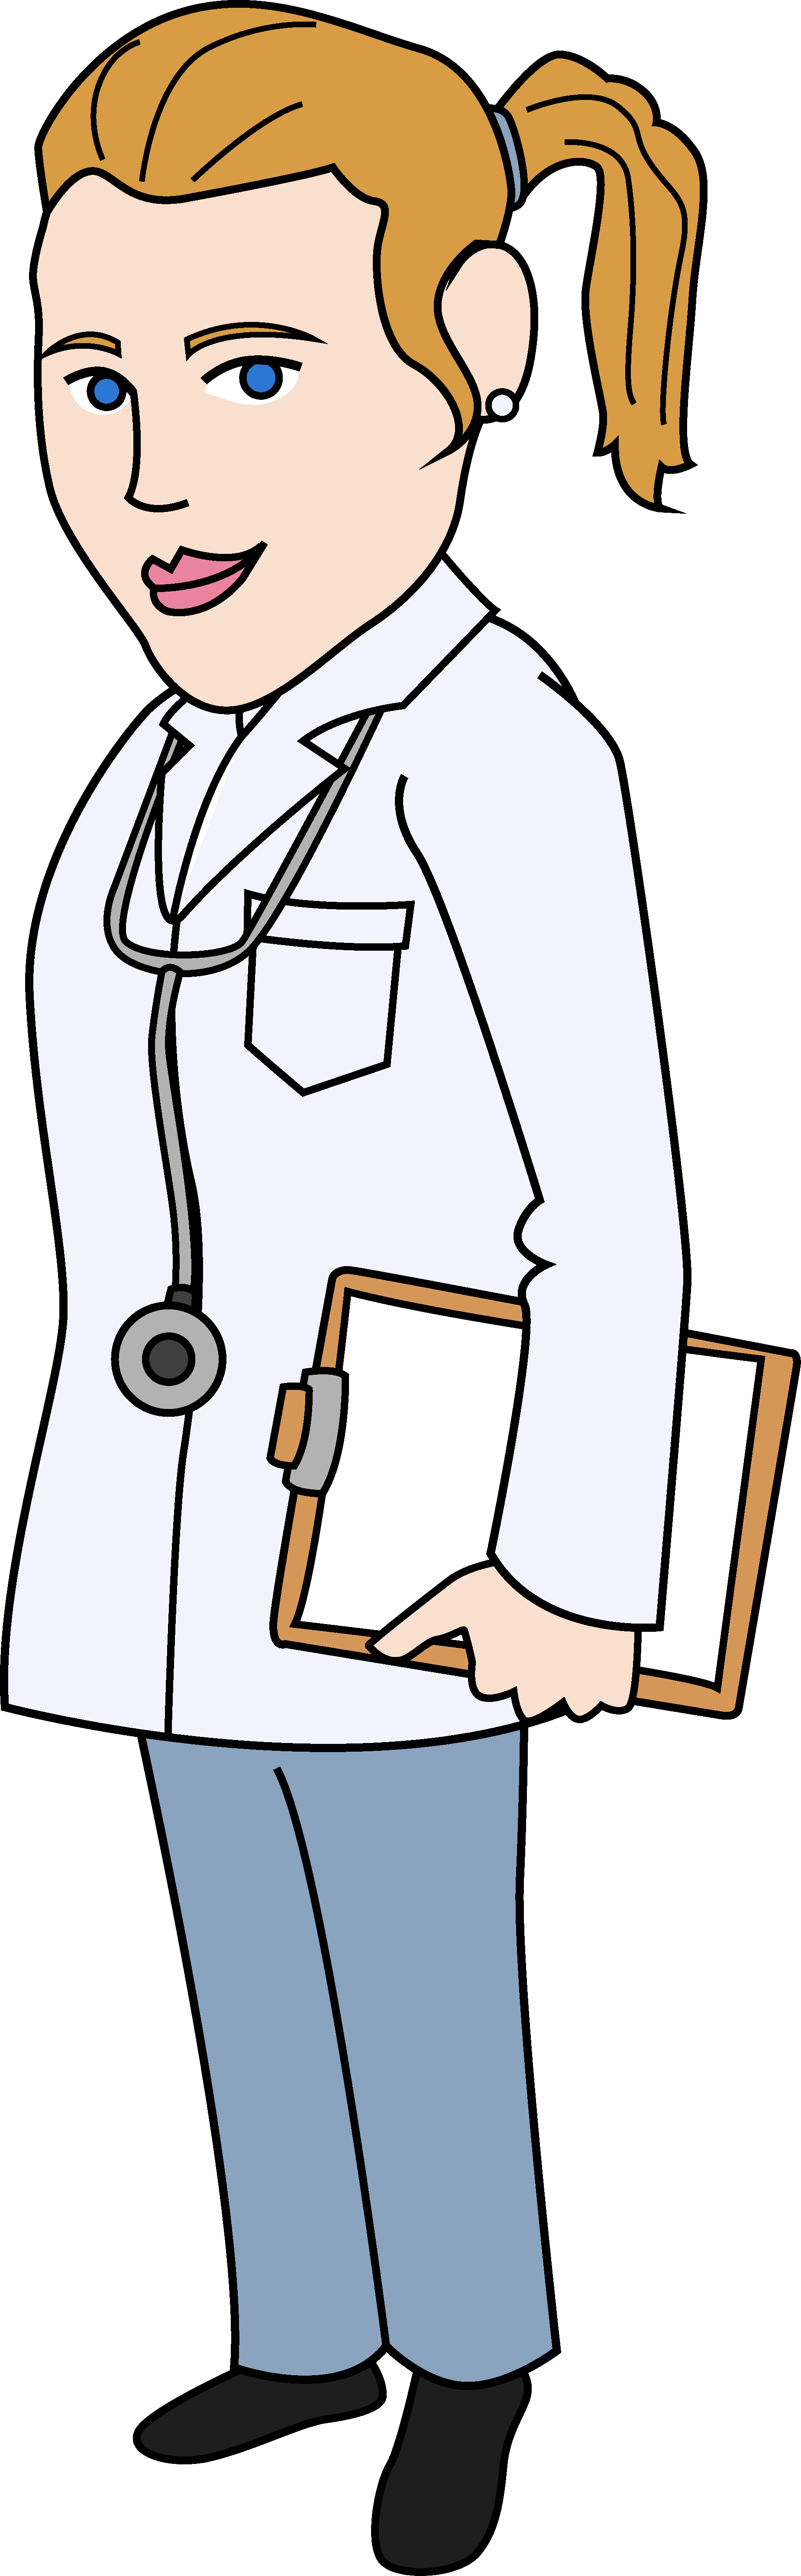 Free Clipart Doctor-Free Clipart Doctor-13